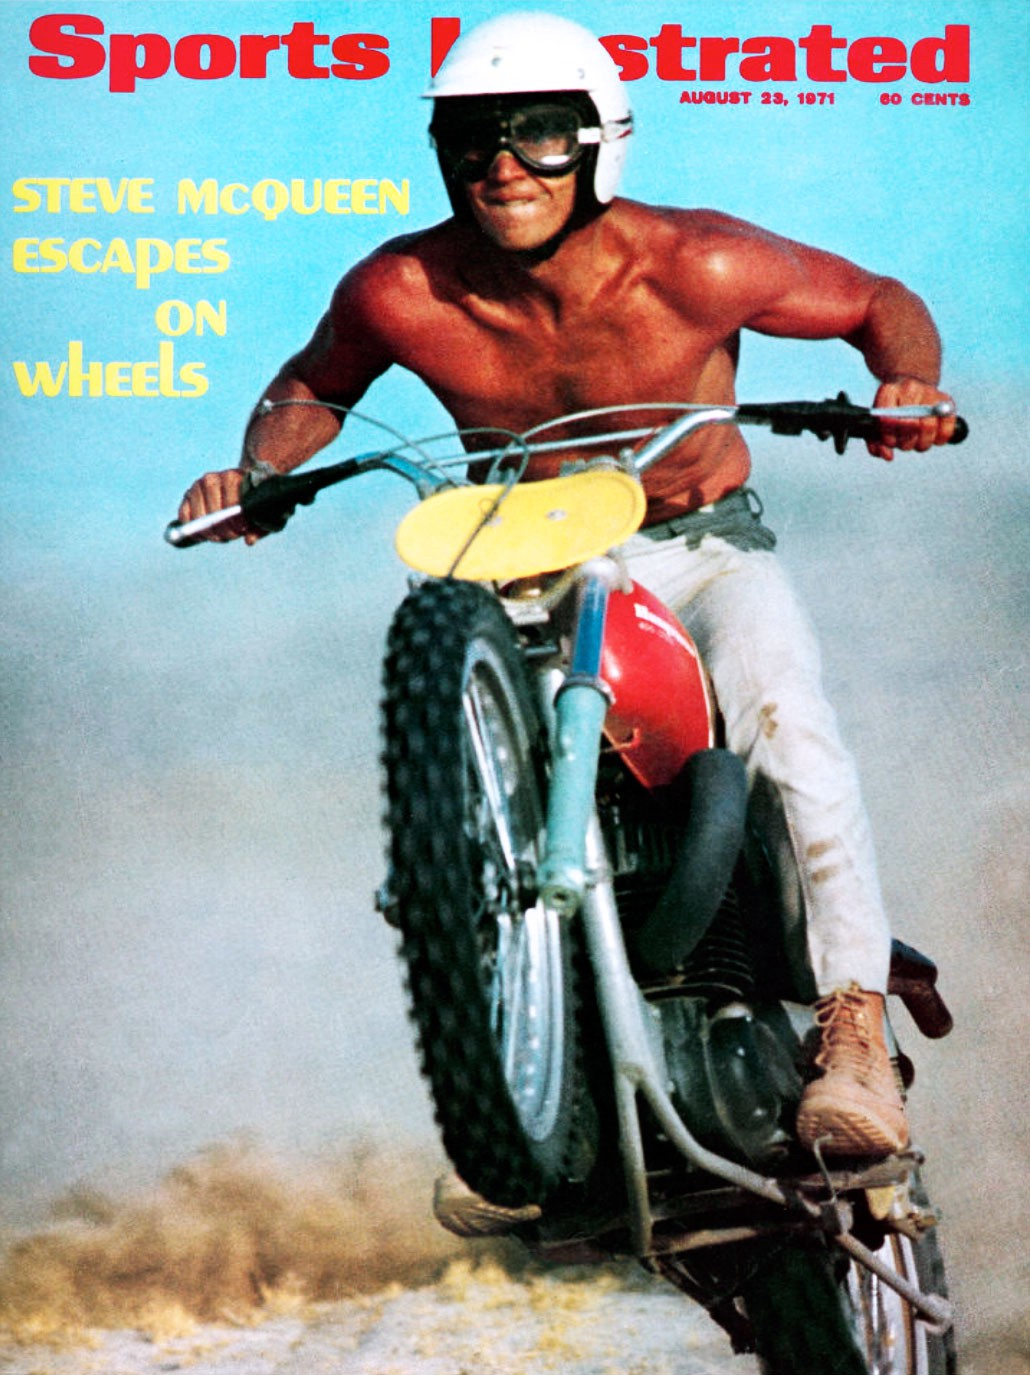 Steve McQueen coolly rides a motorcycle in the Mojave Desert on June 13, 1971, selected for the cover of Sports Illustrated.